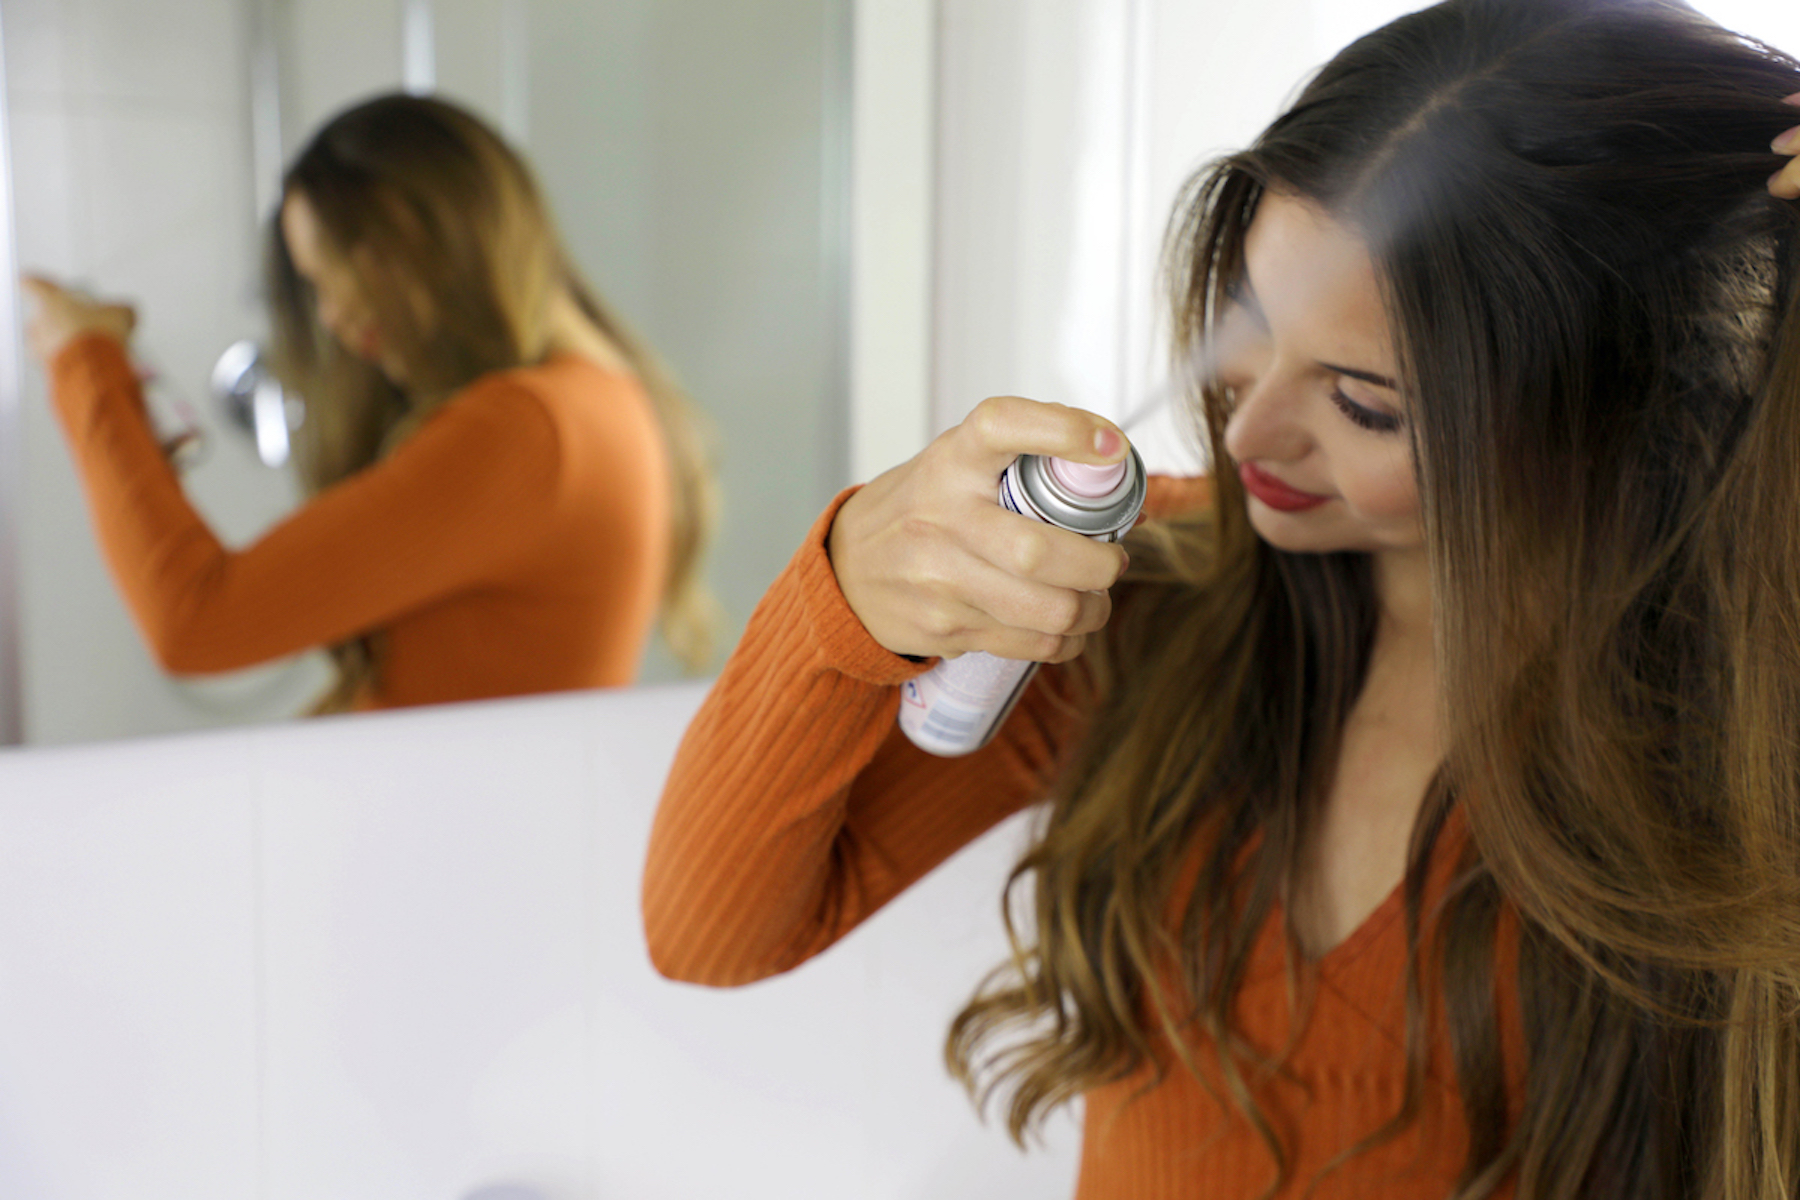 brunette woman with eyelash extensions spraying her hair with hairspray